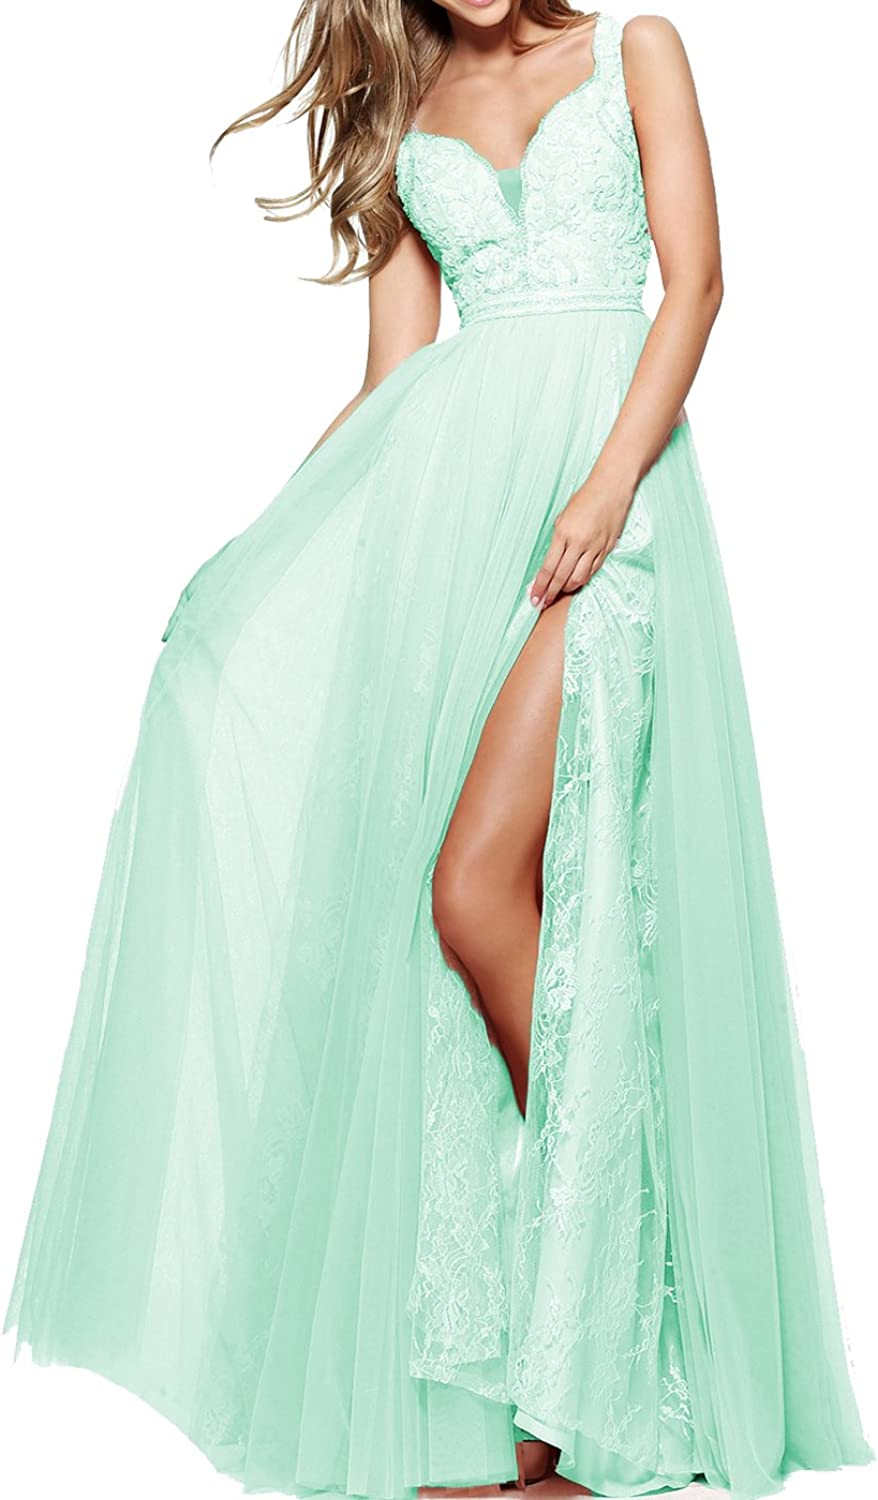 Yilisclothing Women's Off Shoulder Halter A Line Beaded Prom Dress Lace Tulle Evening Gown